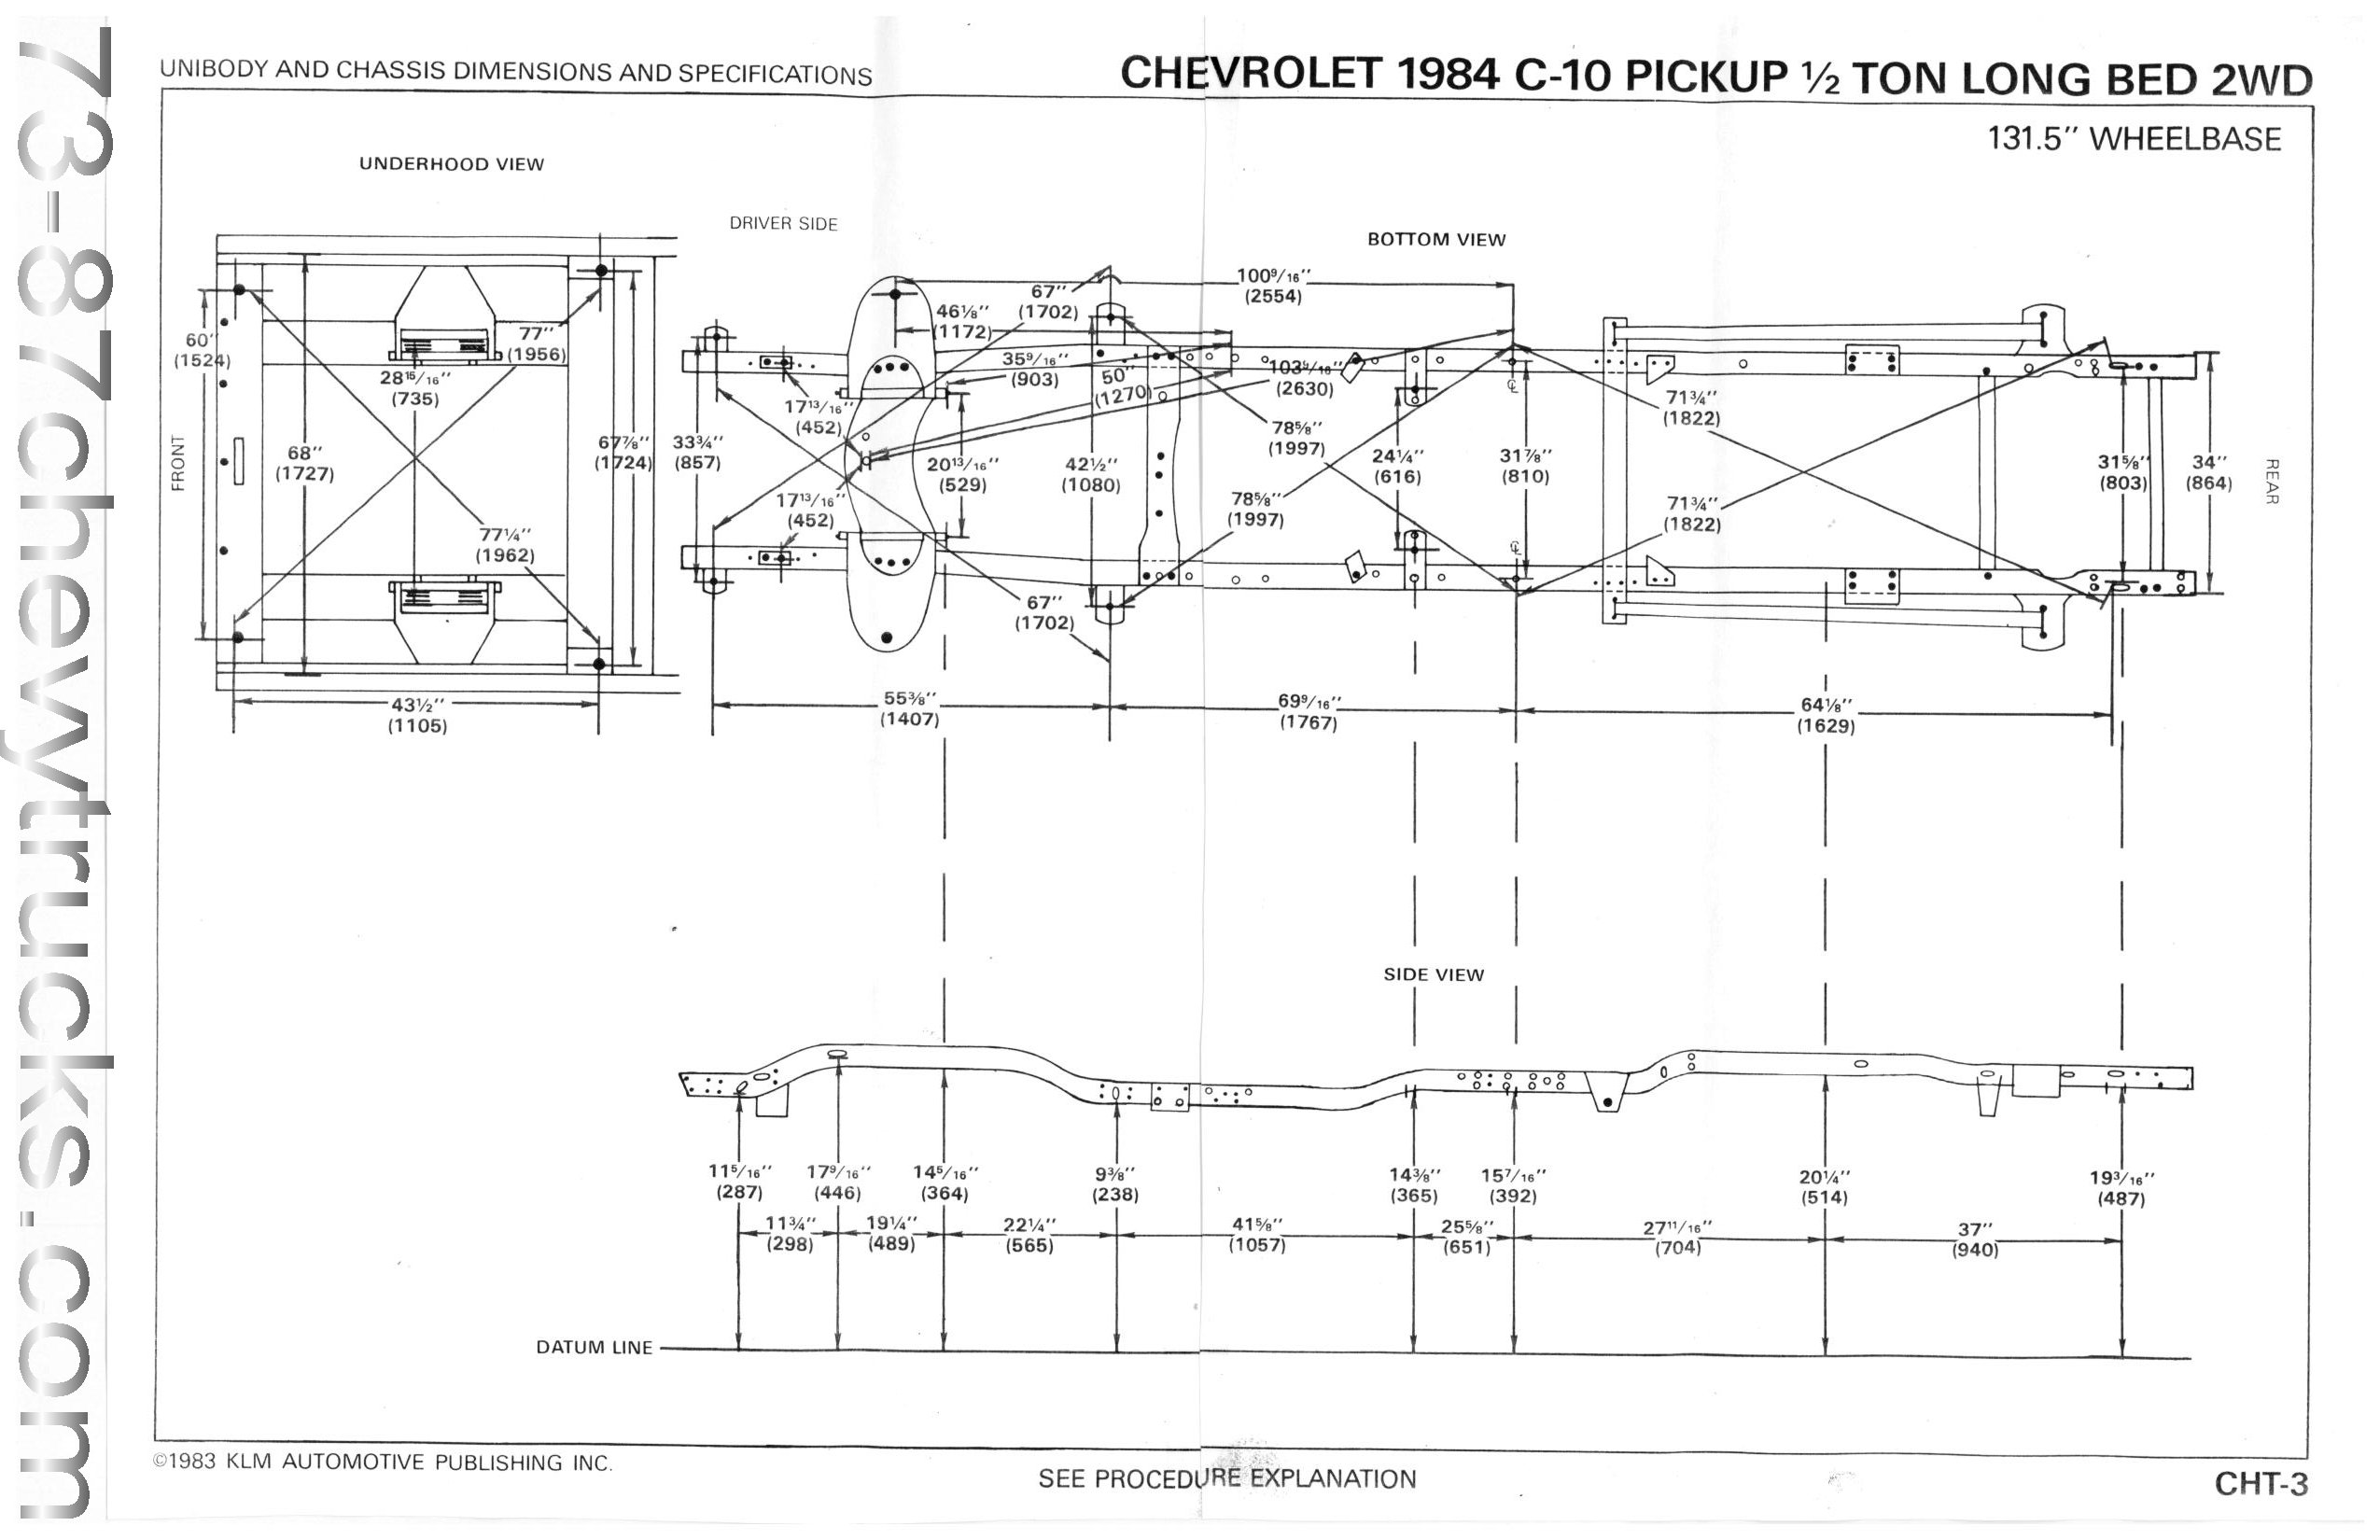 Chis Dimensions on electrical circuit wiring diagram, 2006 dakota fuel wiring diagram, 1988 dodge truck parts, 1988 dodge truck speedometer, dodge pickup wiring diagram, turn signal wiring diagram, 1988 dodge truck distributor, 1988 dodge truck tires, dodge ignition wiring diagram, dodge voltage regulator wiring diagram, harley handlebar switch wiring diagram, 1988 dodge dakota engine diagram, series 60 ecm wiring diagram, electric blower motor wiring diagram, dodge wiring harness diagram, 1984 dodge d150 wiring diagram, dodge ram wiring diagram, power window wiring diagram, 1970 dodge wiring diagram, ballast resistor wiring diagram,